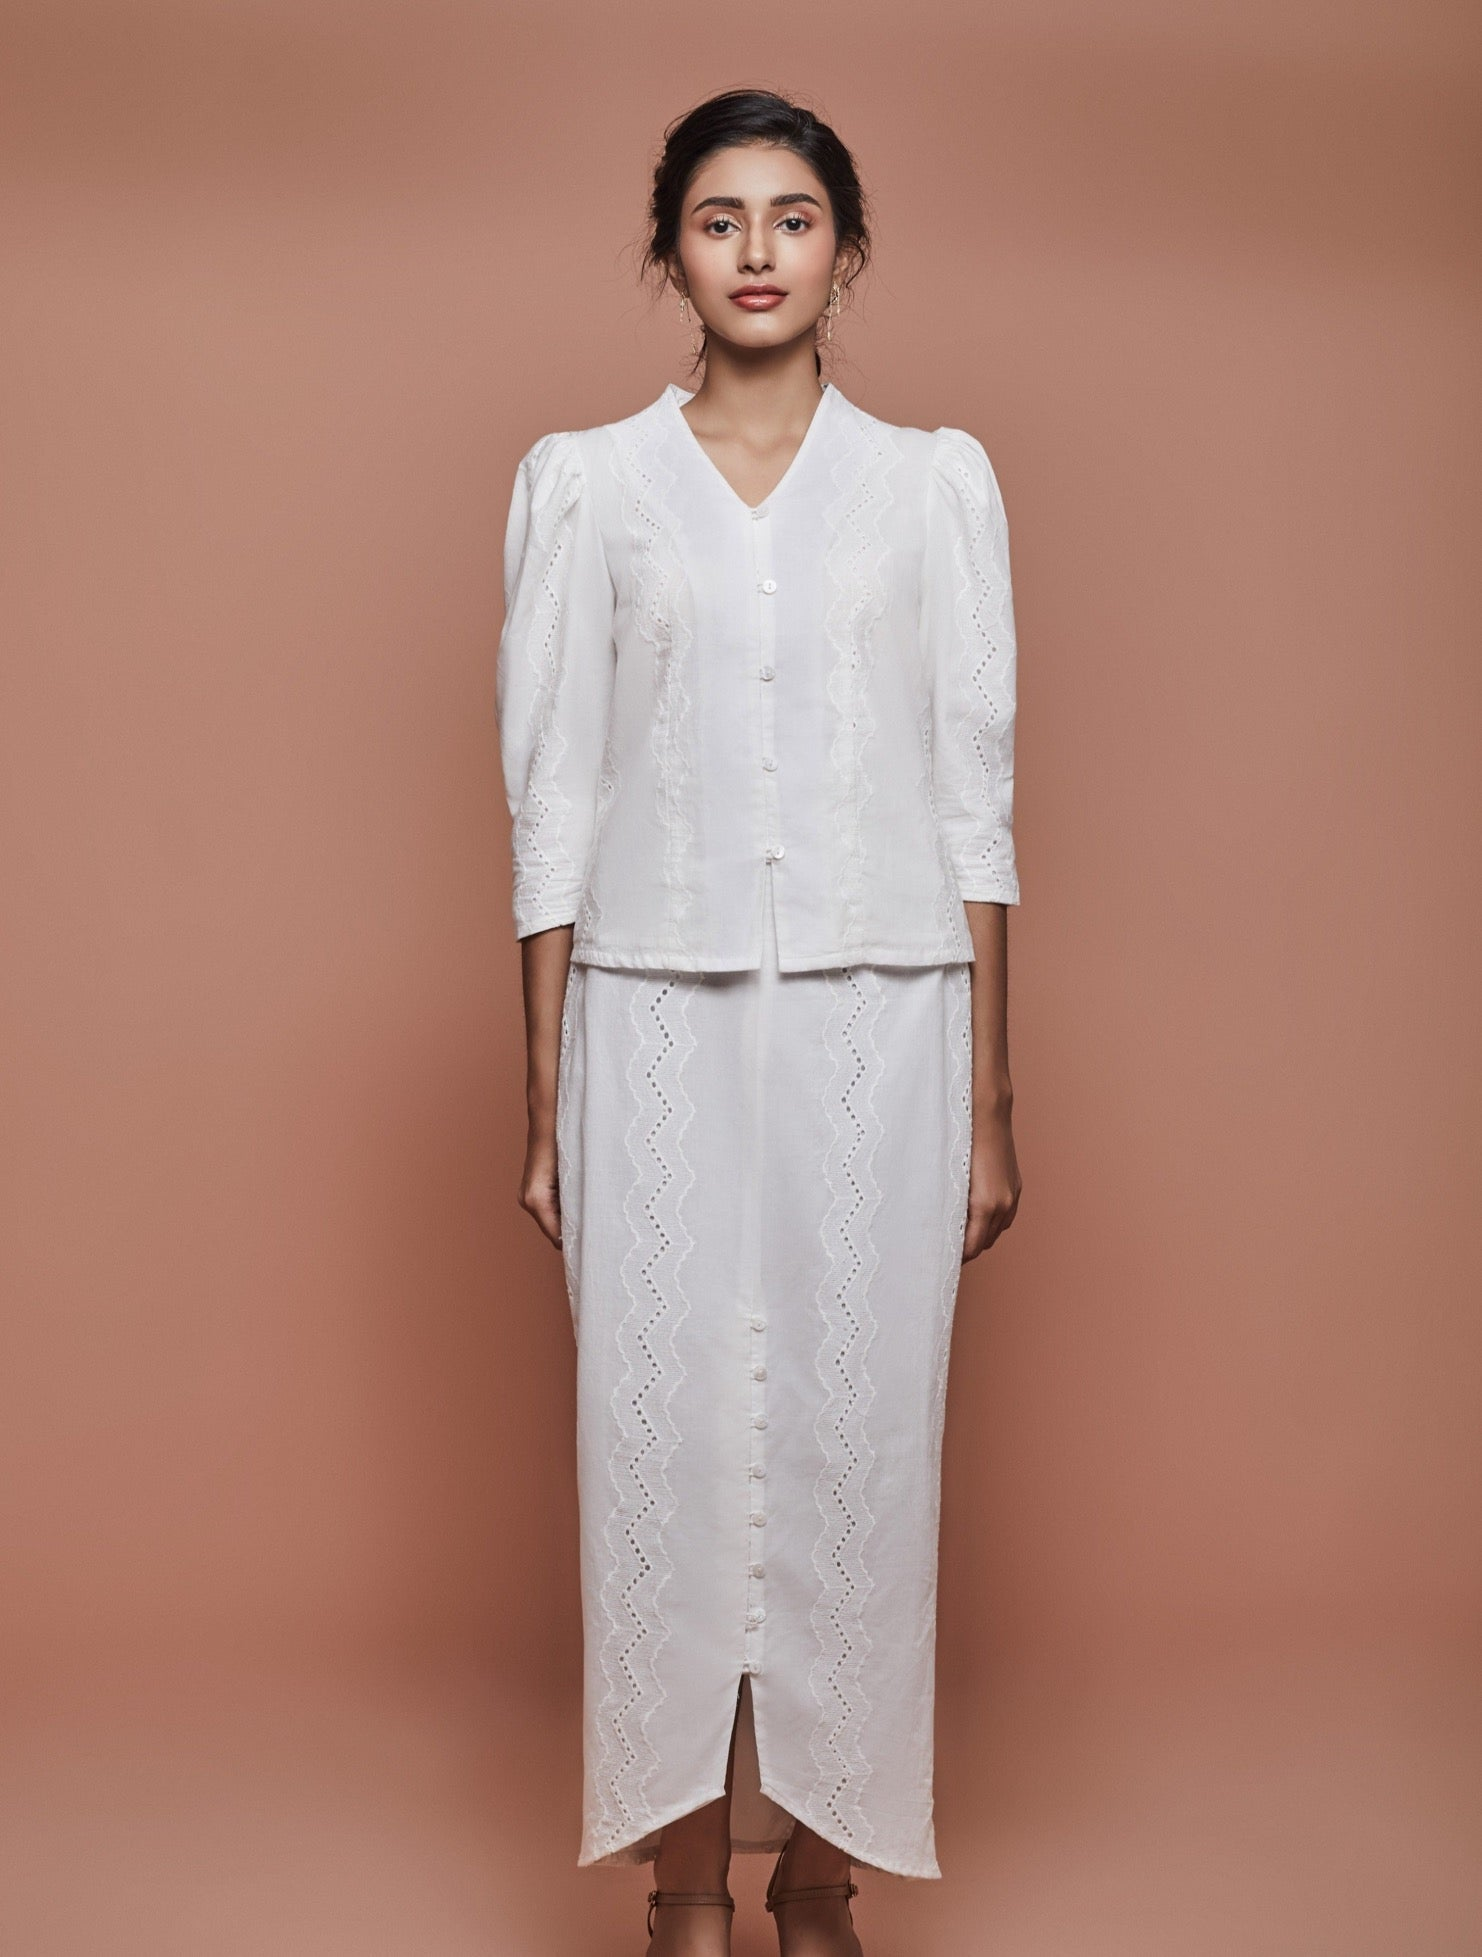 Jul Puffy Kebaya in White Cotton Lace